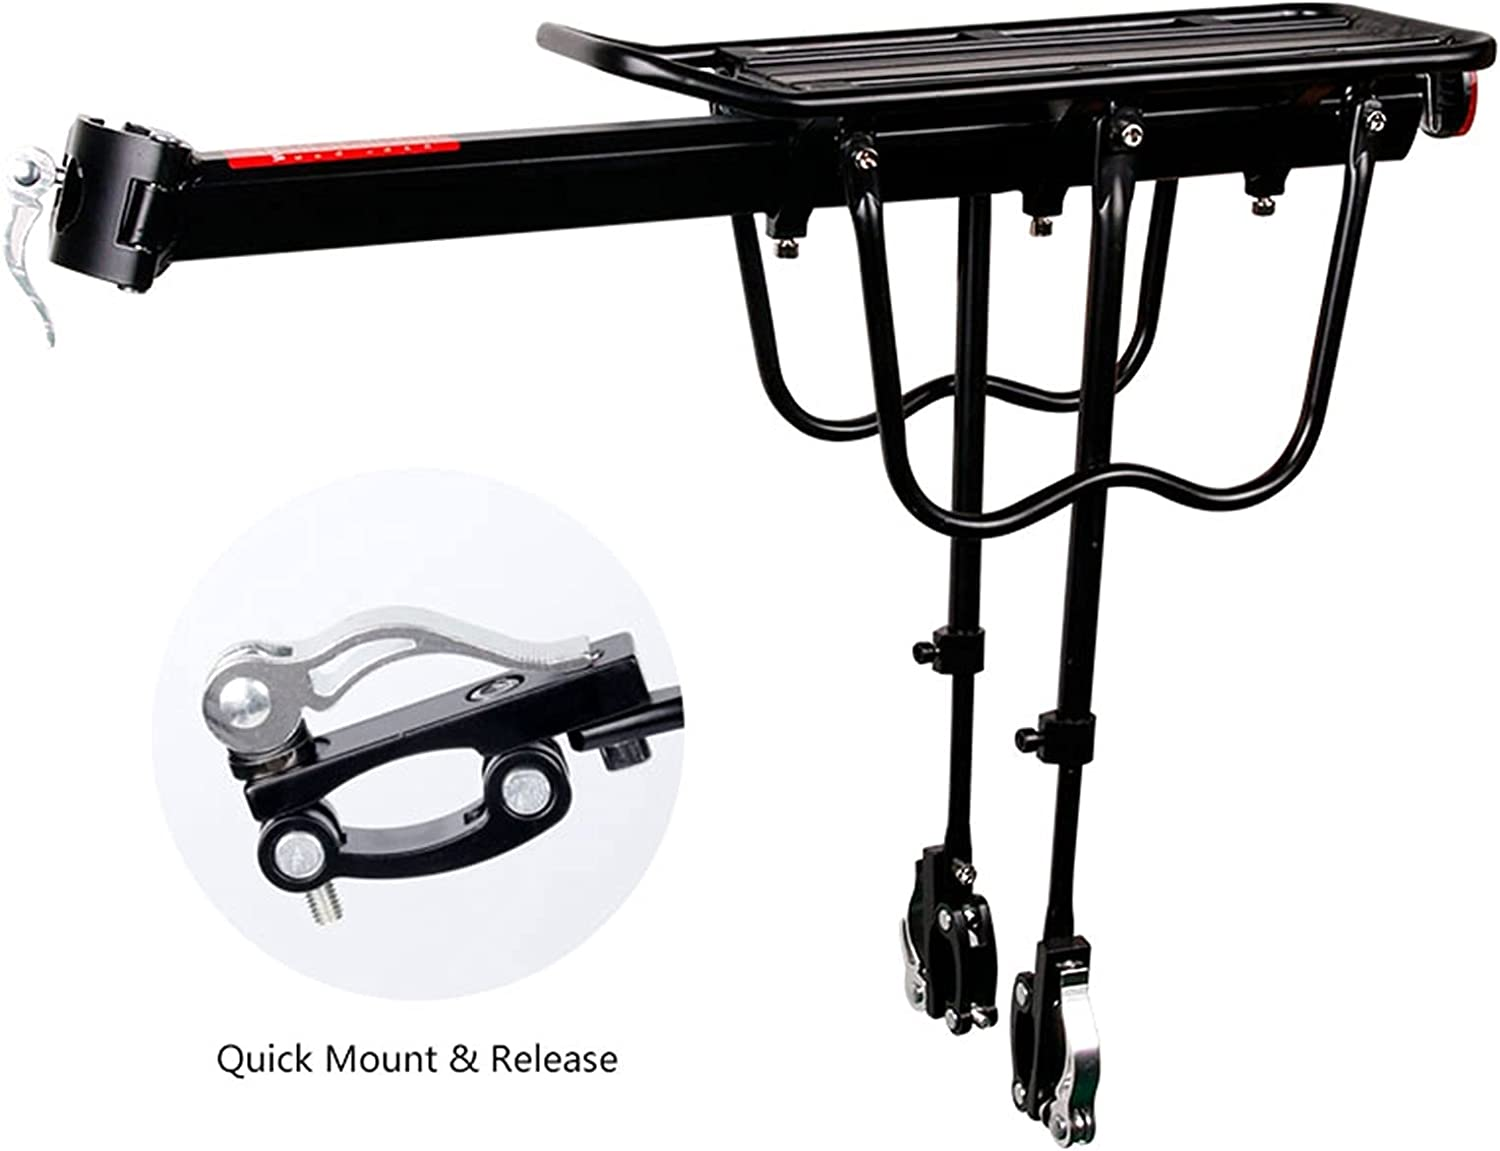 40% OFF Cheap Sale JSJJATQ Bicycle Rear Rack Sale special price 20-29 Bike Carrier Luggag inch